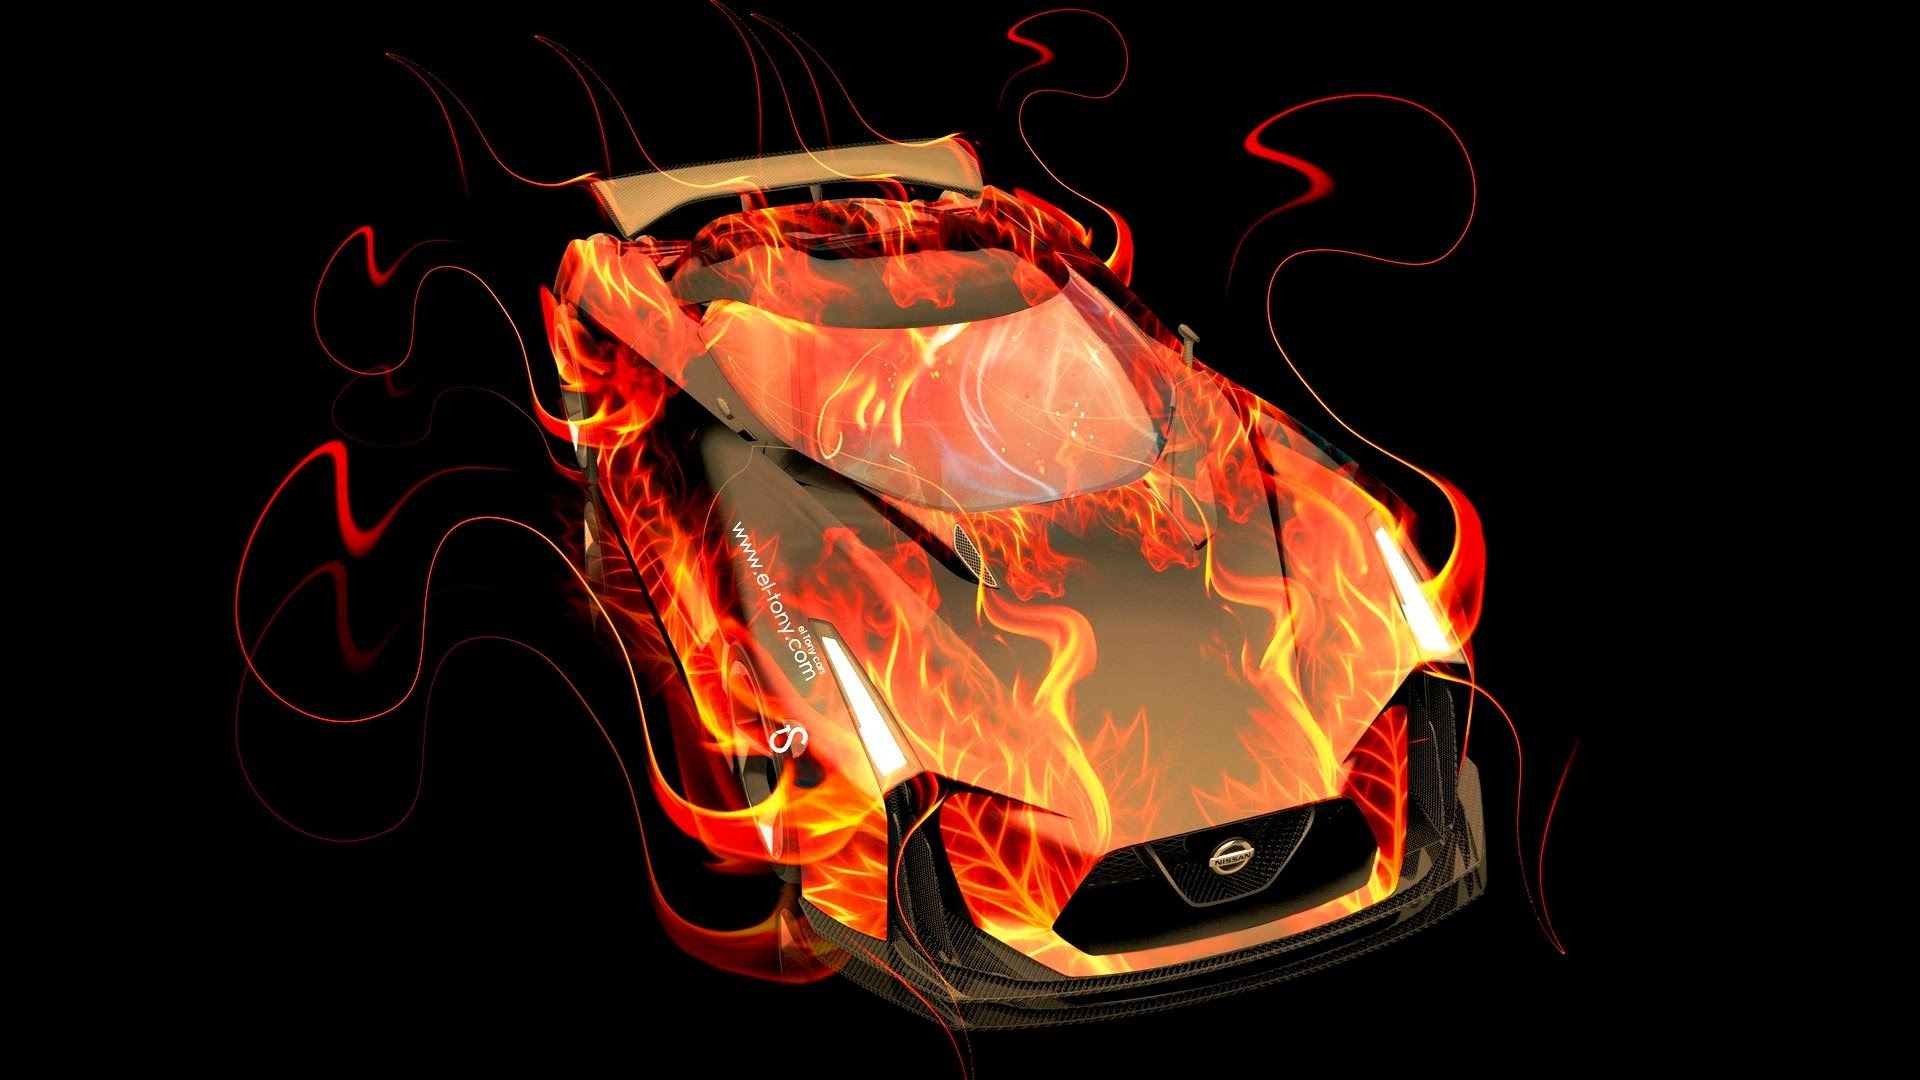 Design Talent Showcase El Tony Com Brings Sensual Elements Fire And Water To Your Car Wallpapers